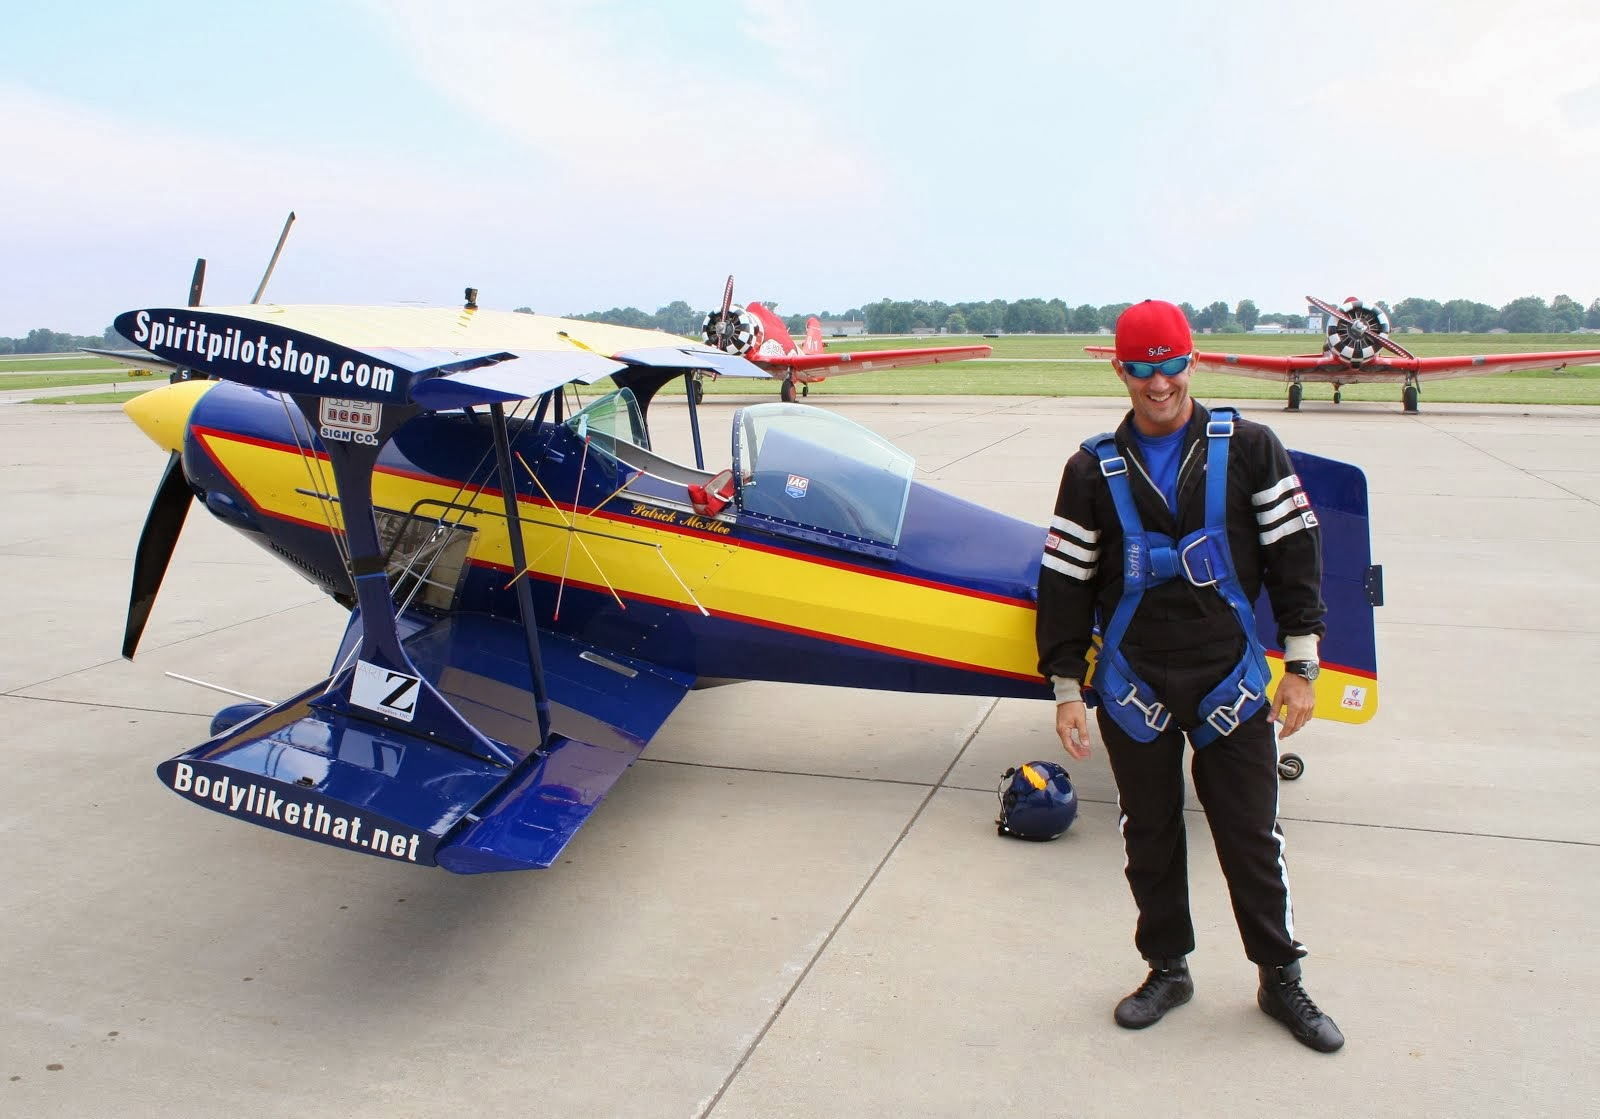 Airshow Performer Patrick McAlee ExtremeFlight Promo Video